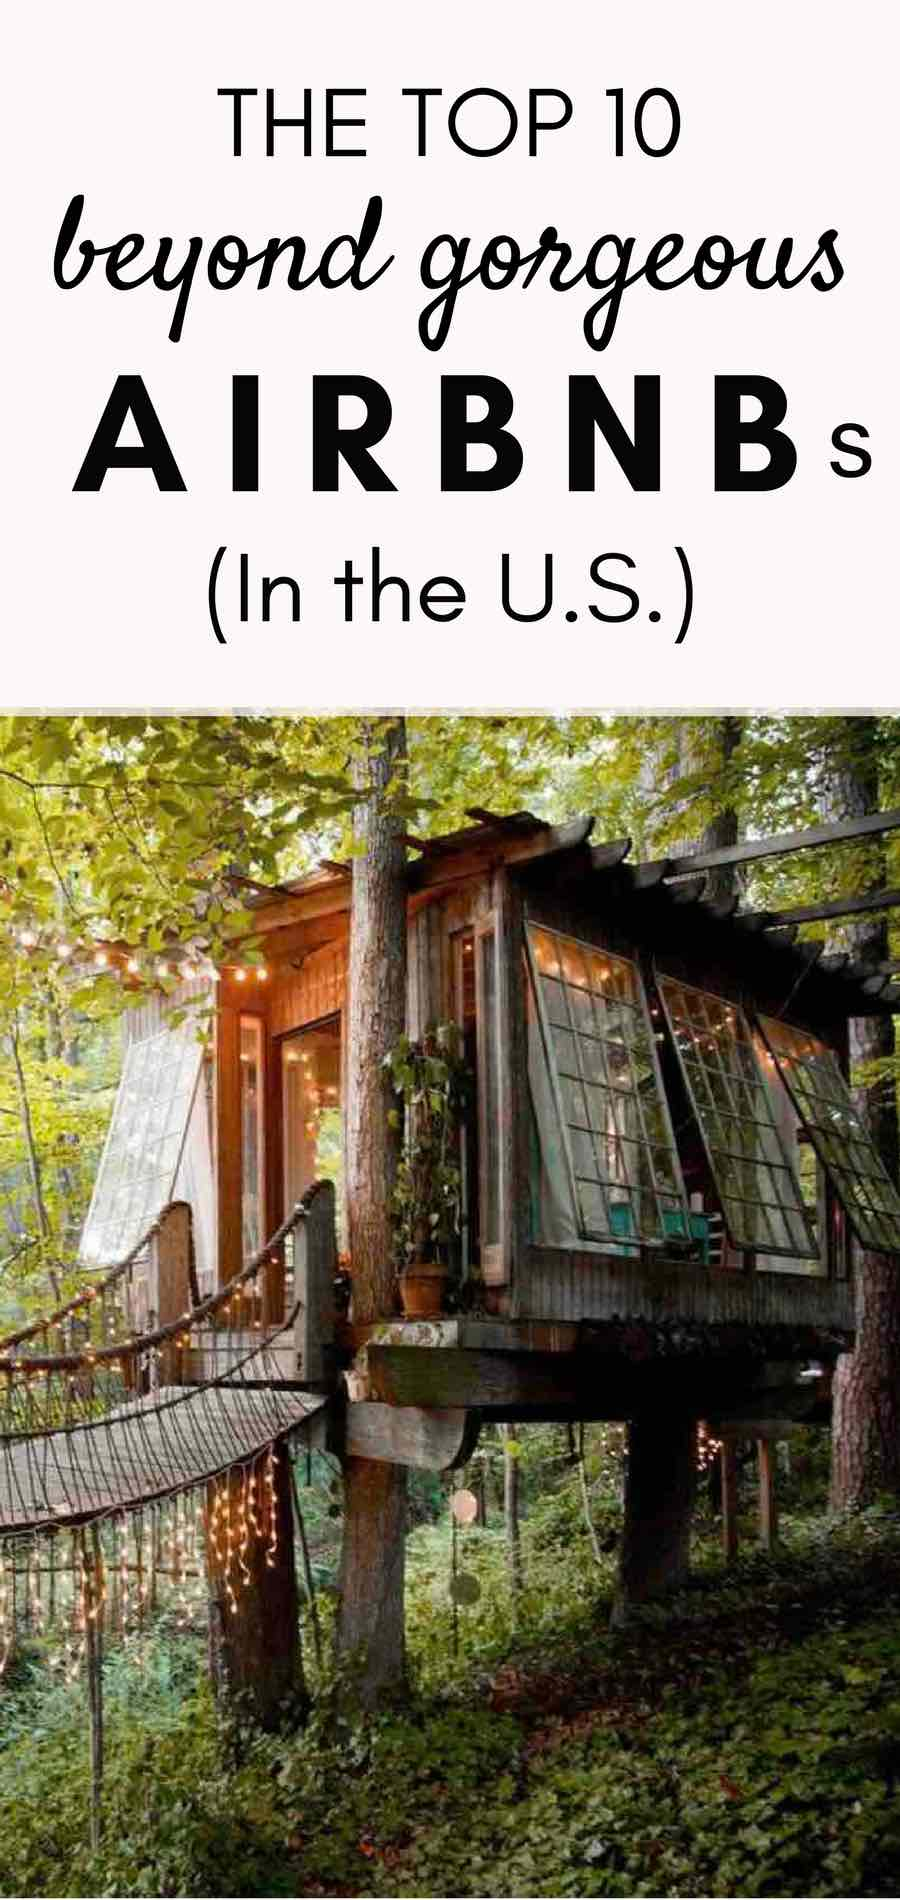 Best Airbnb United States | Top airbnbs US